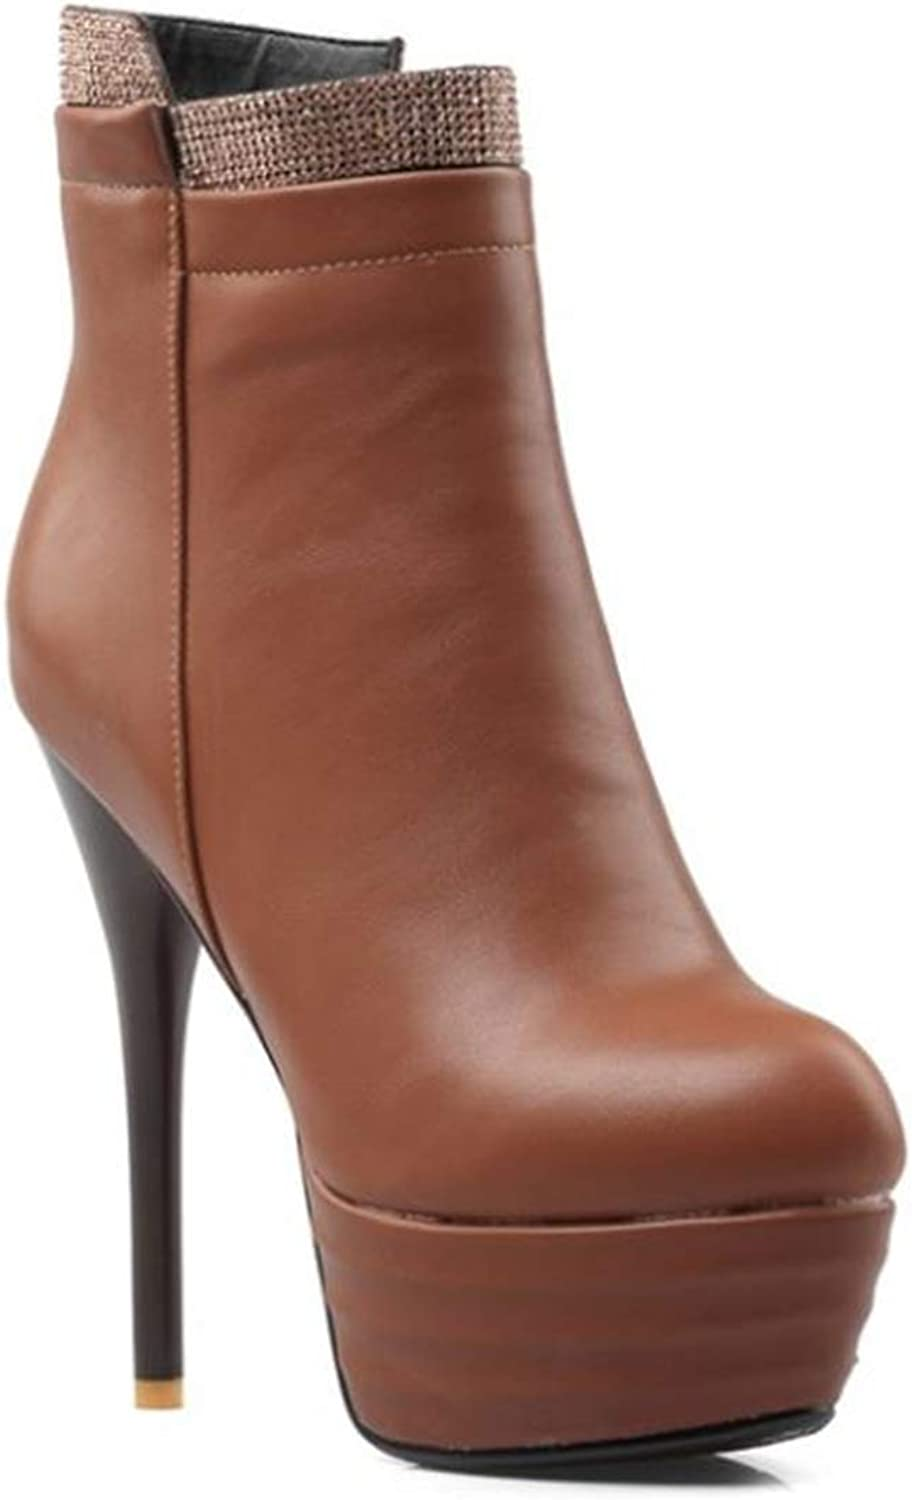 Women's Handcrafted Rounded Toe Side Zipper Slim Fashion Platform Ankle Boots